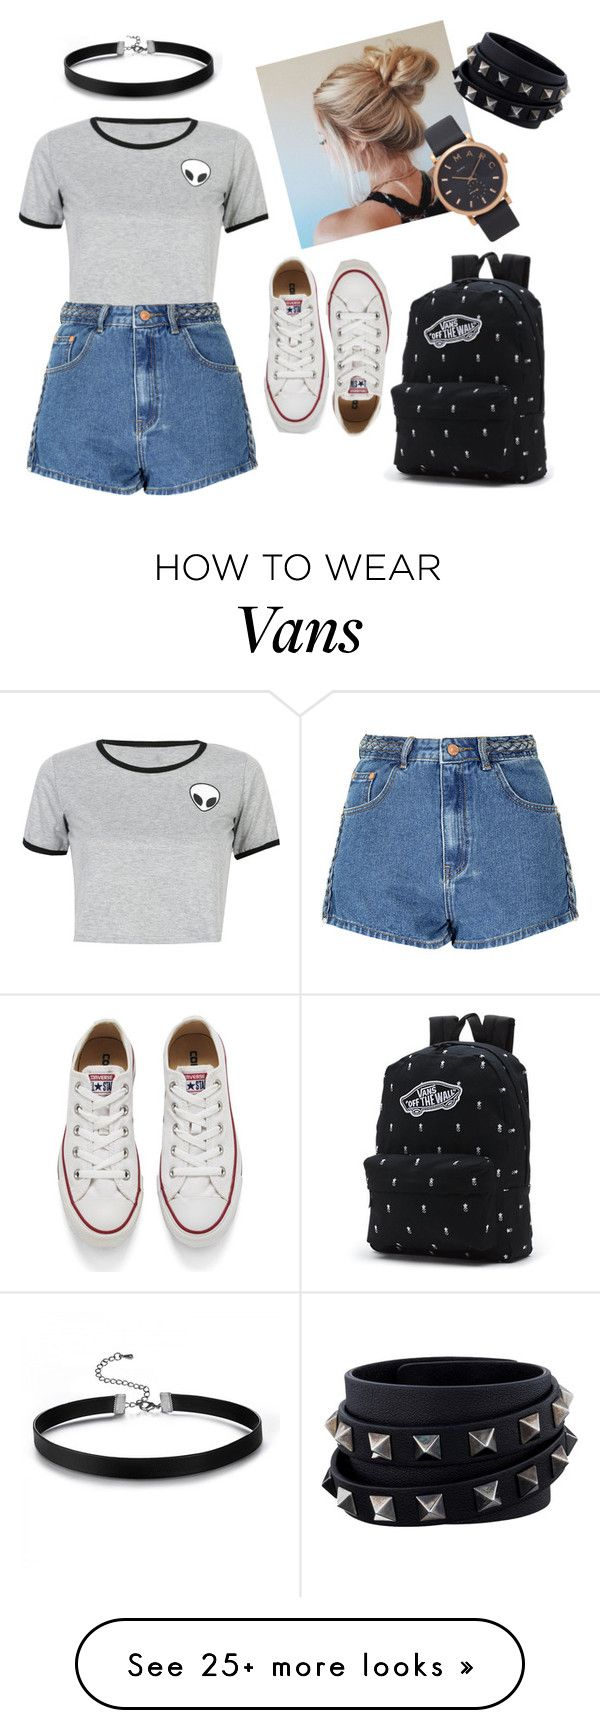 """Untitled #1"" by gencostan7 on Polyvore featuring WithChic, Converse, Glamorous, Marc Jacobs, Vans and Valentino"